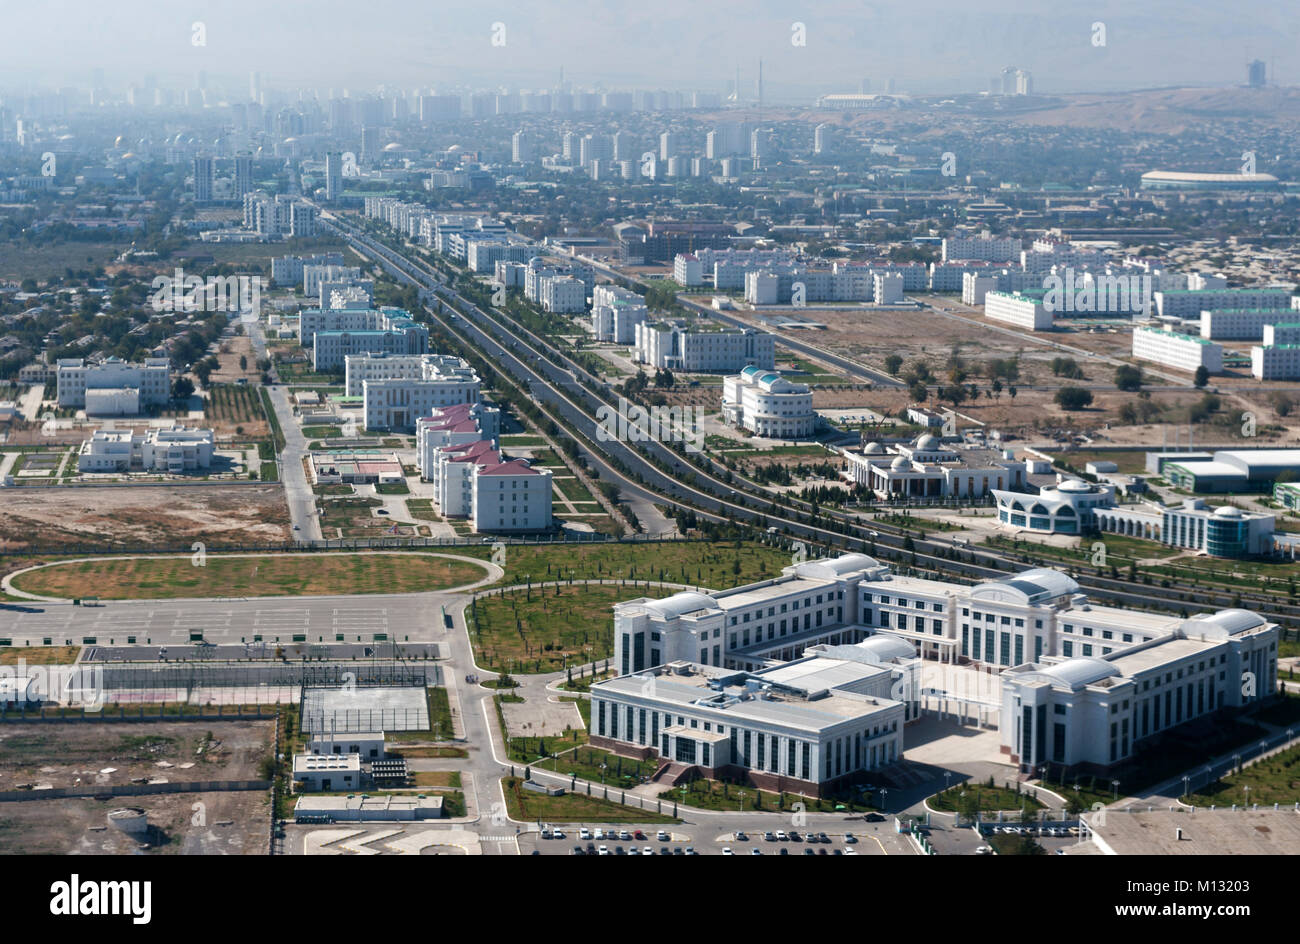 View of the Ashgabat the capital of the Turkmenistan - Stock Image